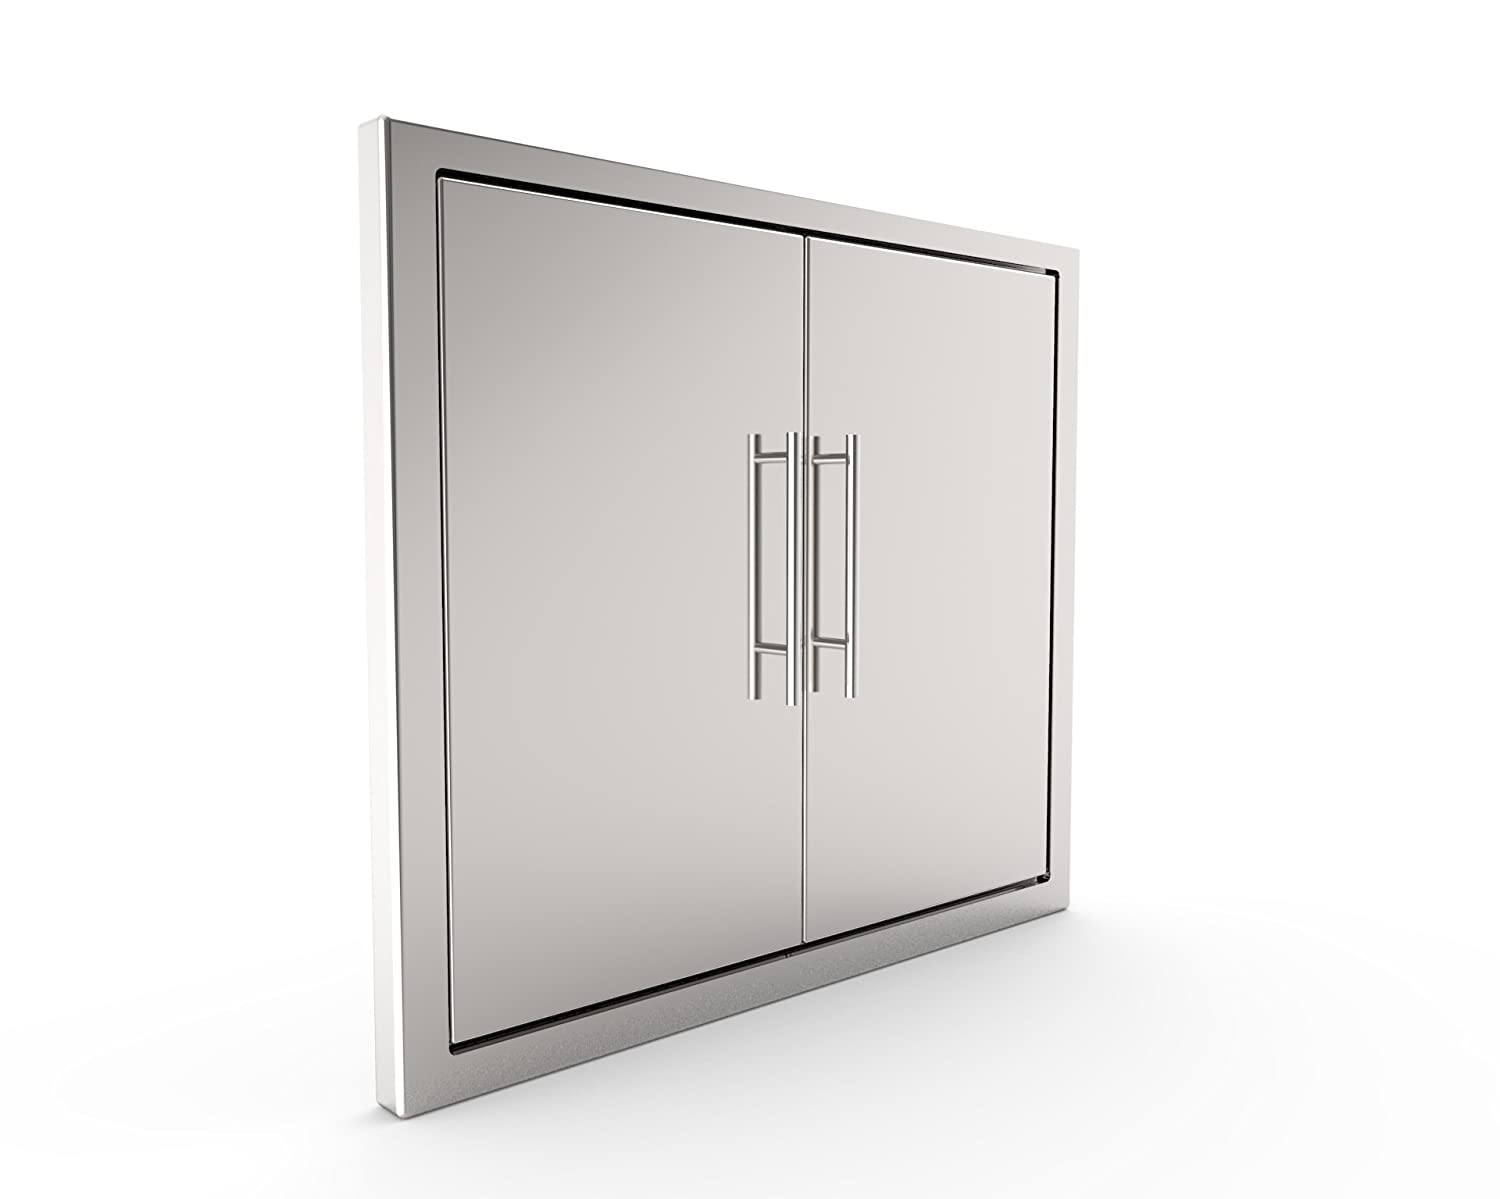 Amazon.com : BBQ ACCESS DOOR/ELEGANT NEW STYLE* 31 Inch 304 Grade ...